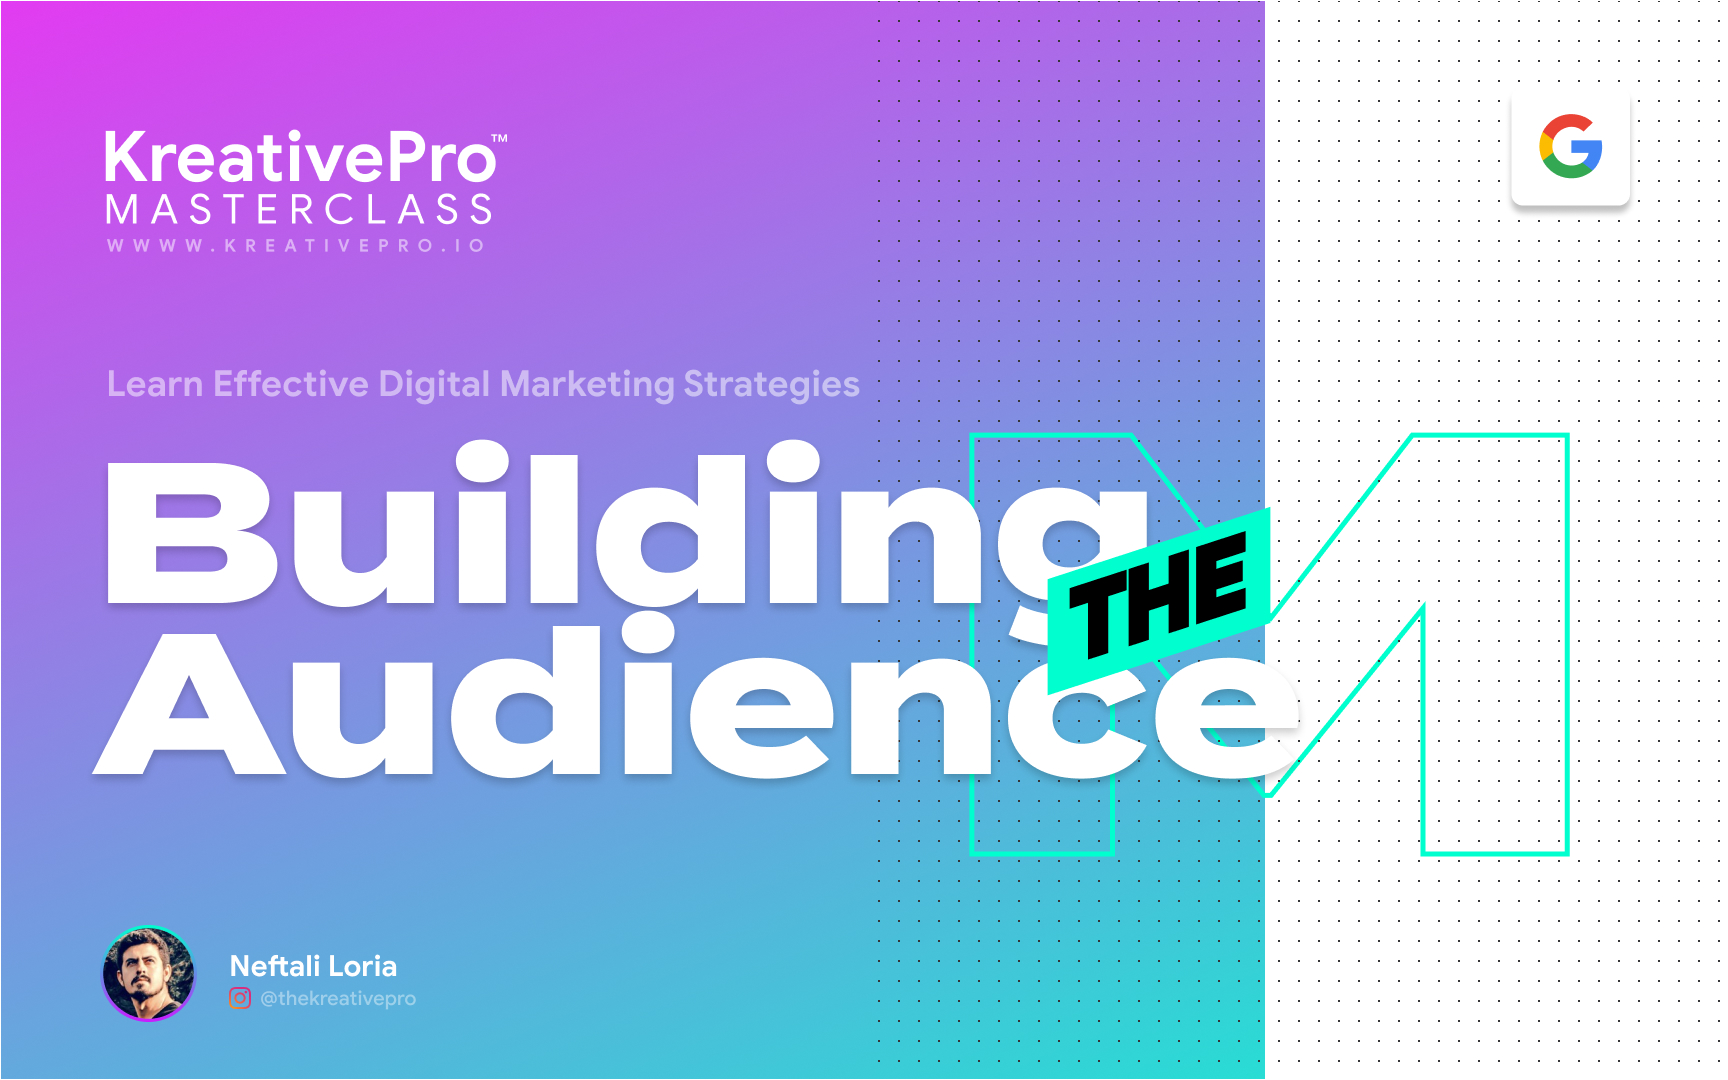 Marketing 3.0 - Building an Audience